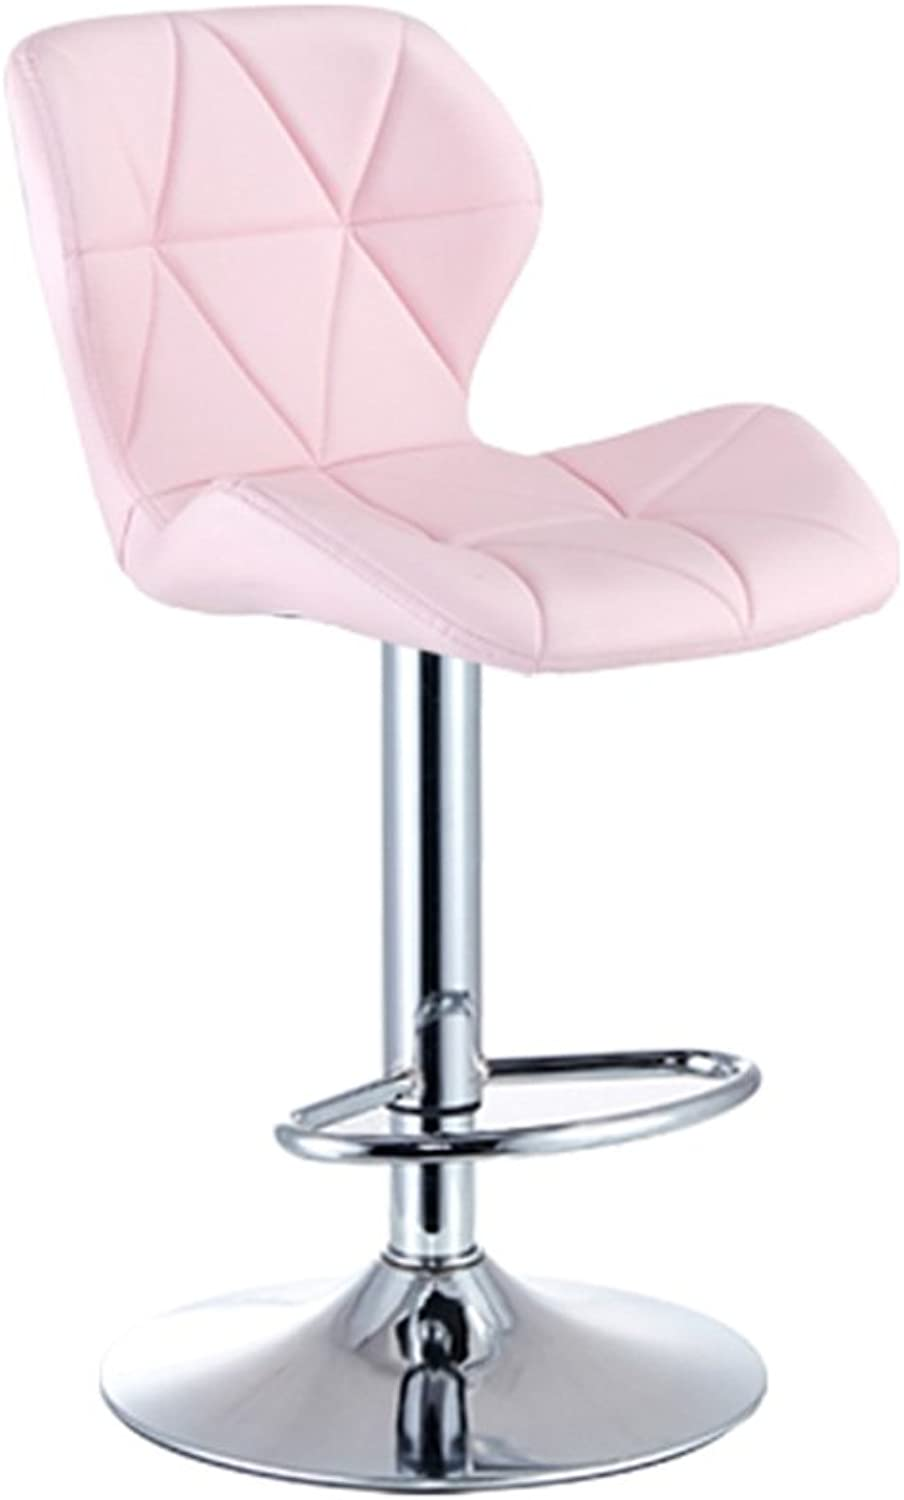 Bar Chairs Lift Chair Nail Chair with backrest High Stool Household Home Office Furniture (color   Pink)